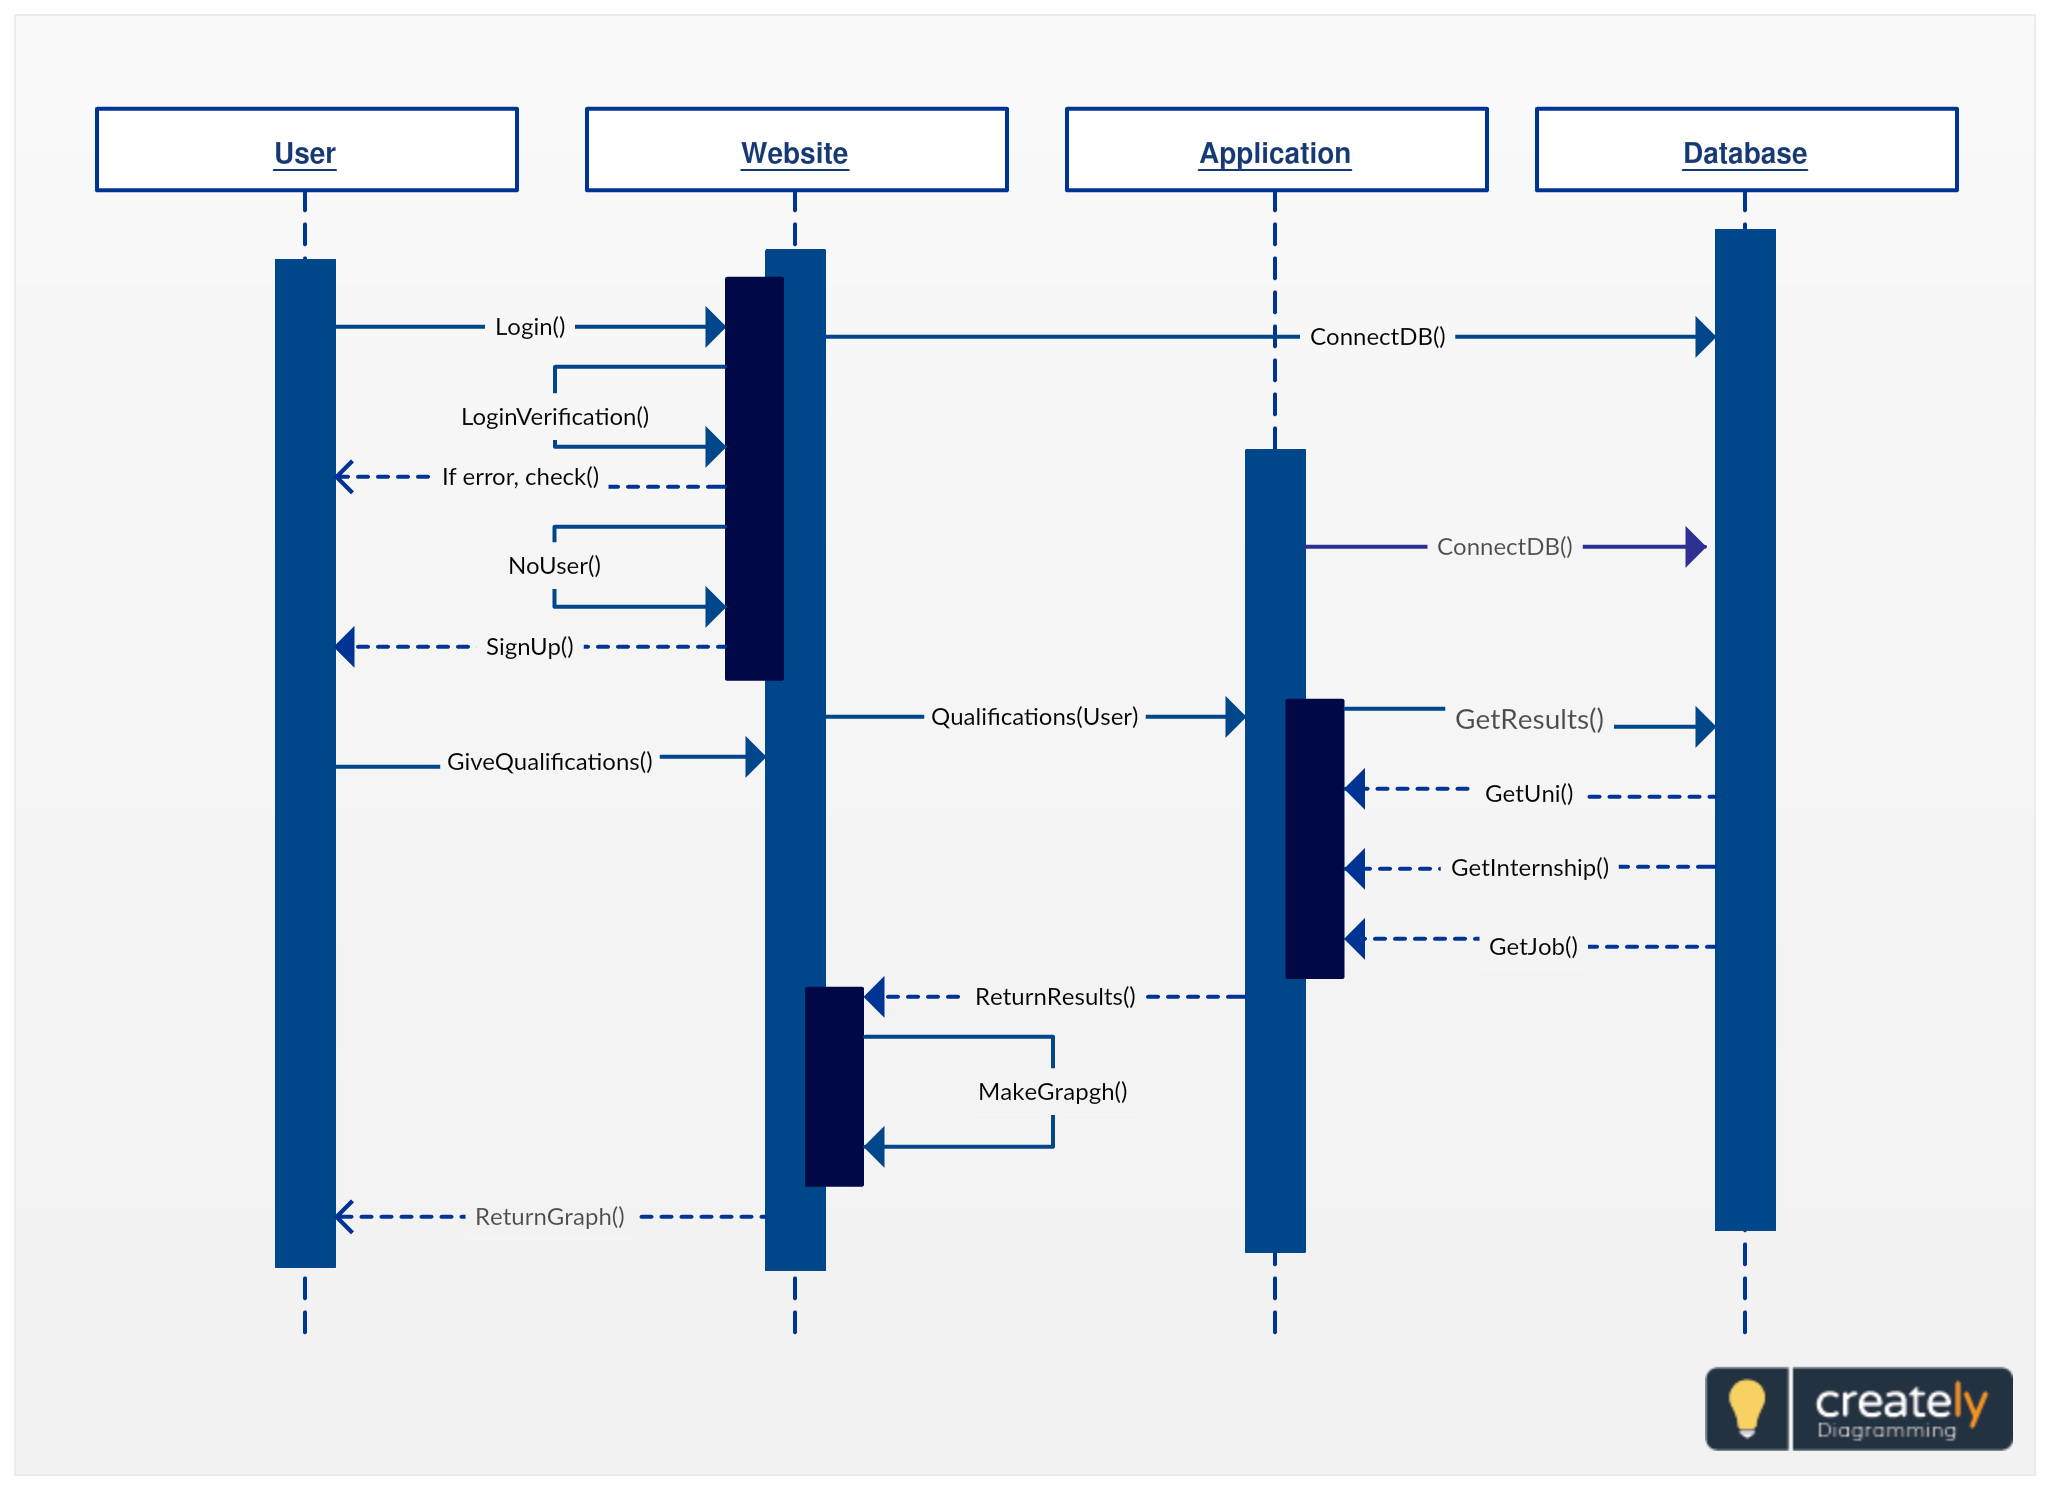 medium resolution of uml sequence diagram for sky canoe sequence diagram shows the user interaction in the system to sign up click on the diagram to edit online and download